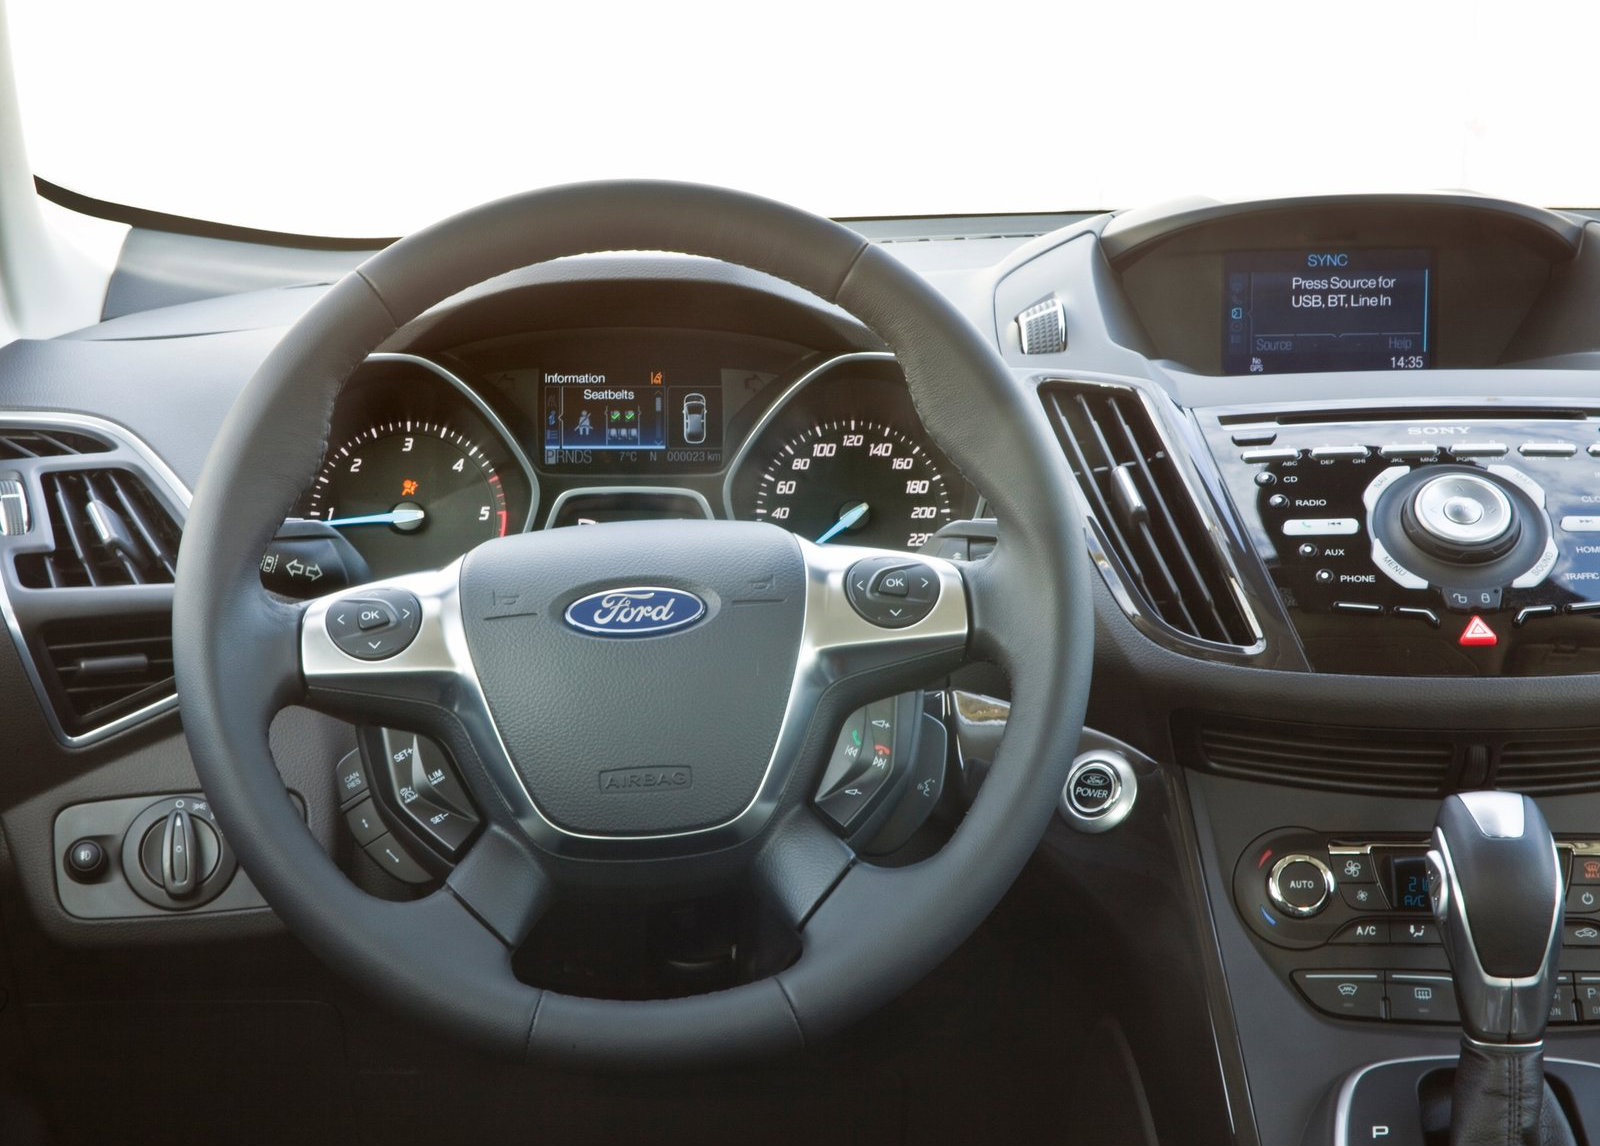 ford kuga ii 2015 images #6